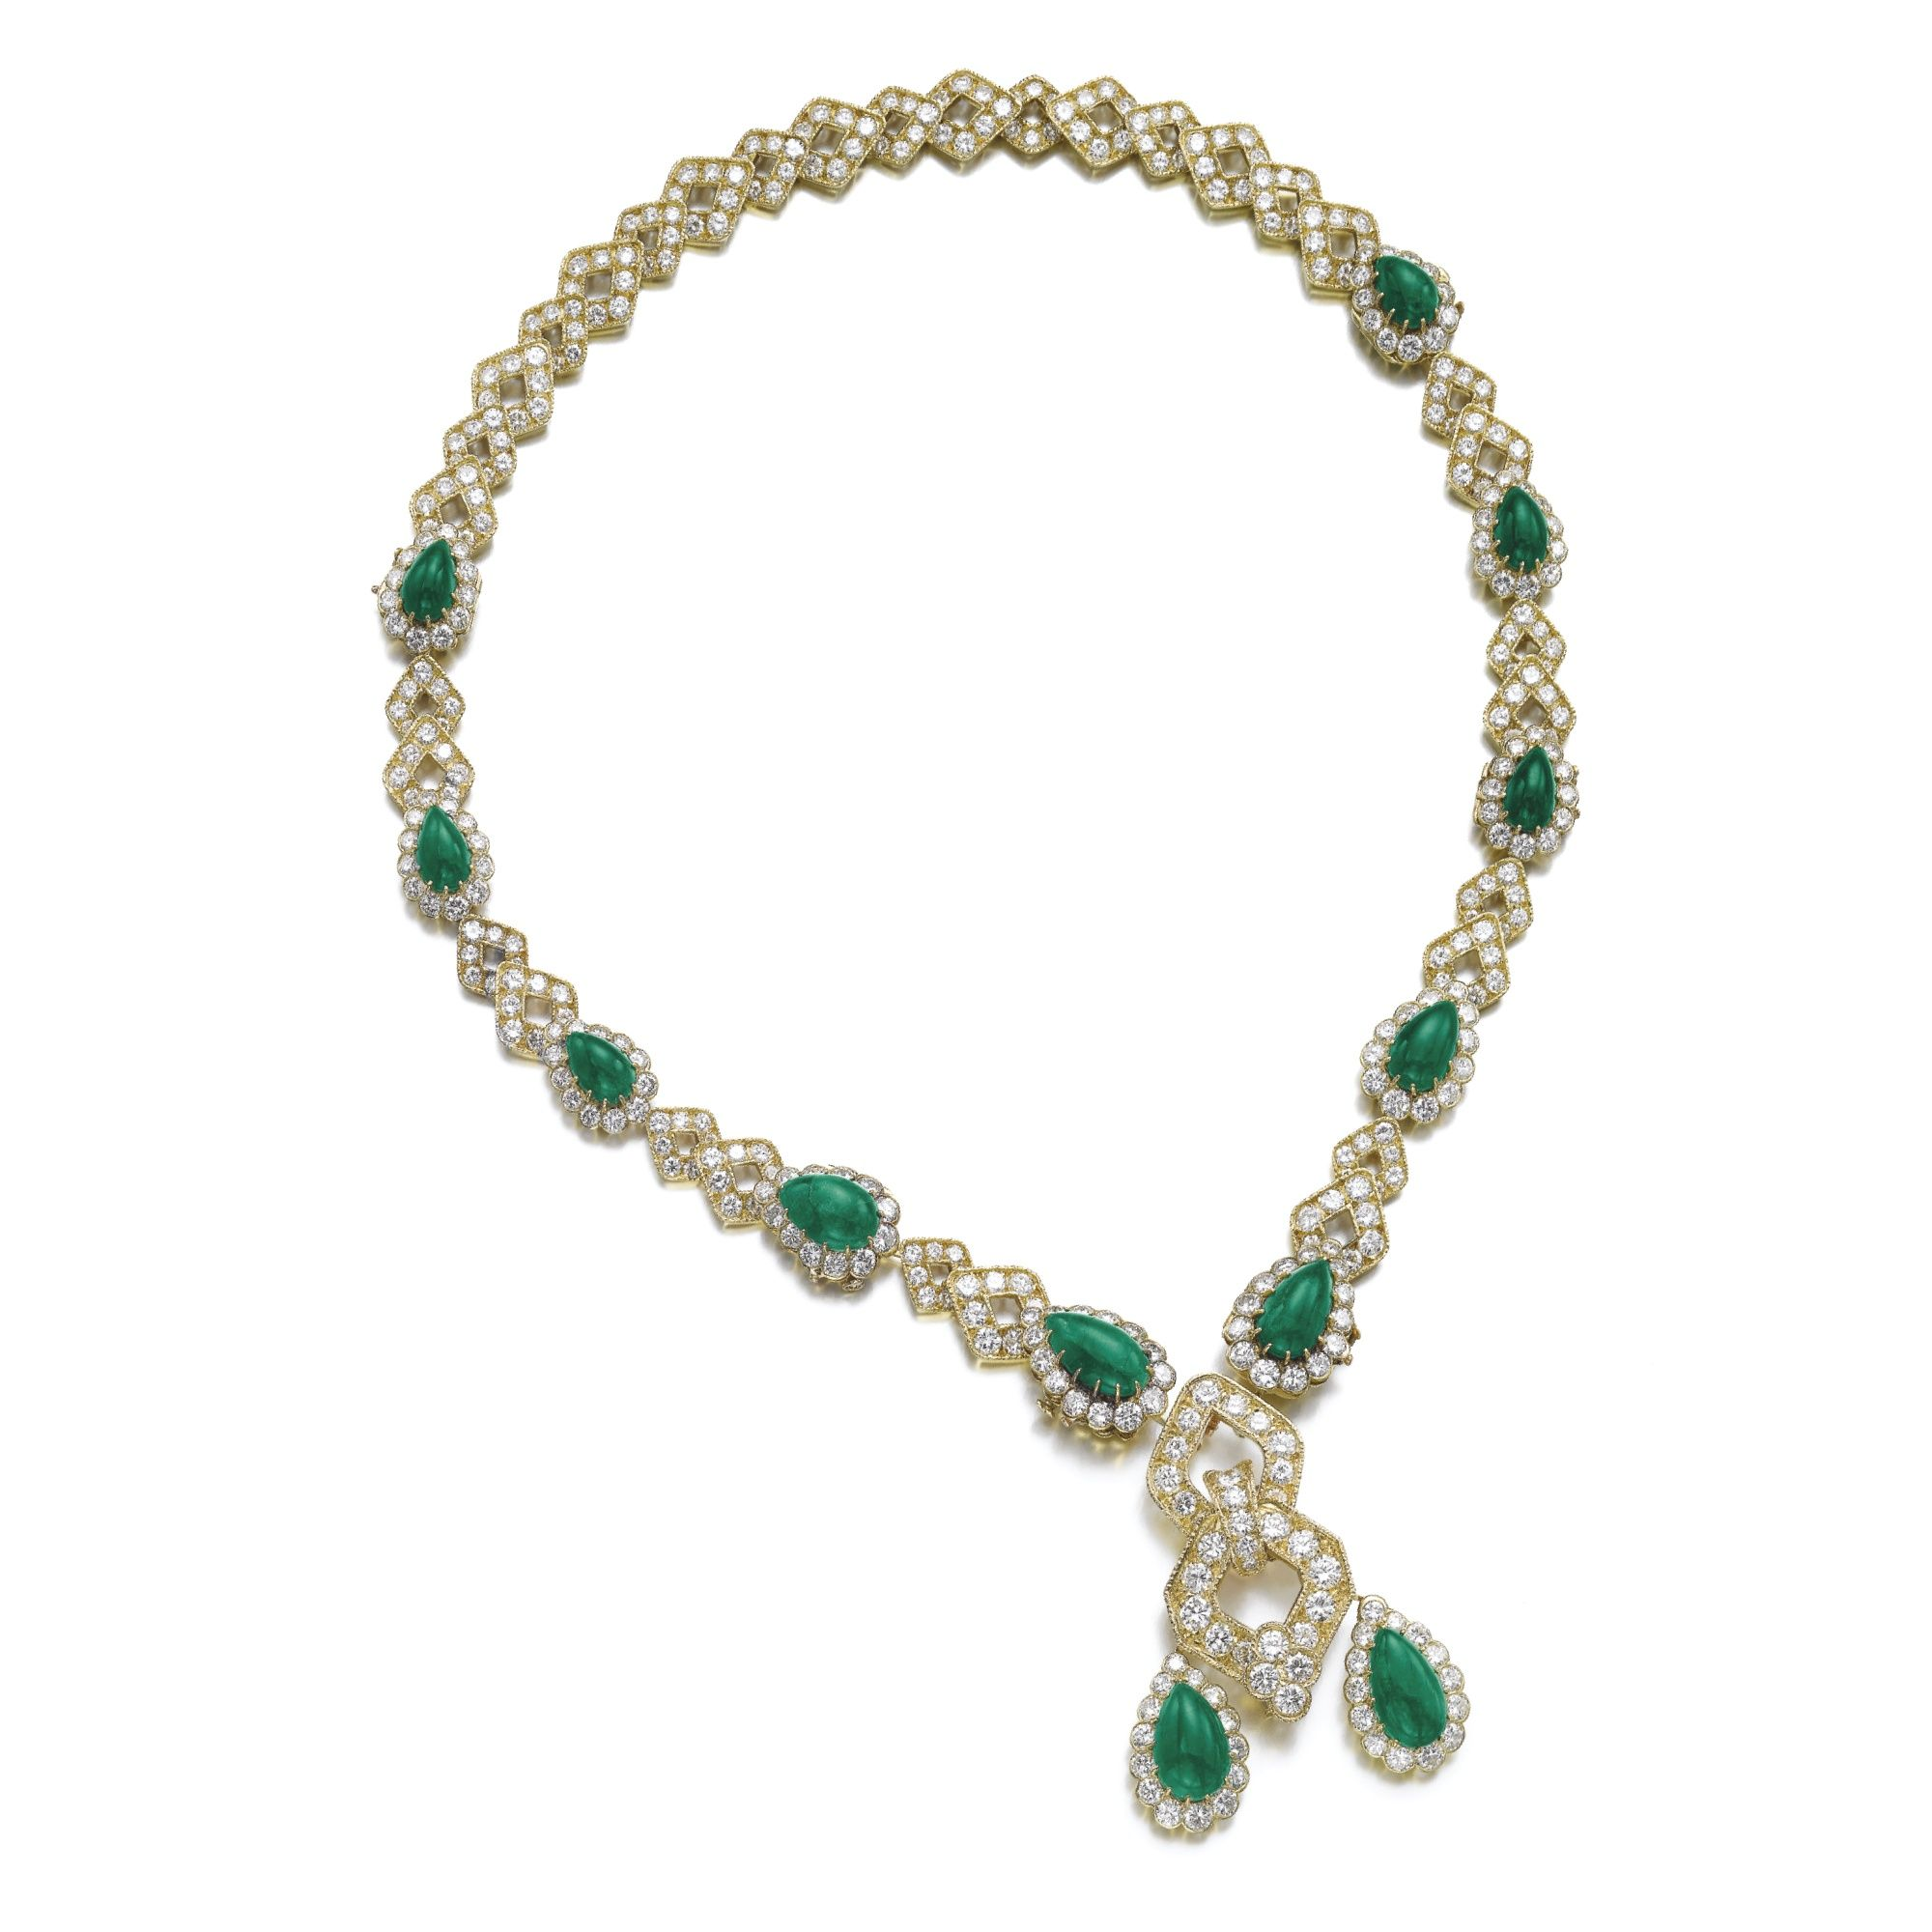 Emerald and diamond necklace van cleef u arpels designed as a